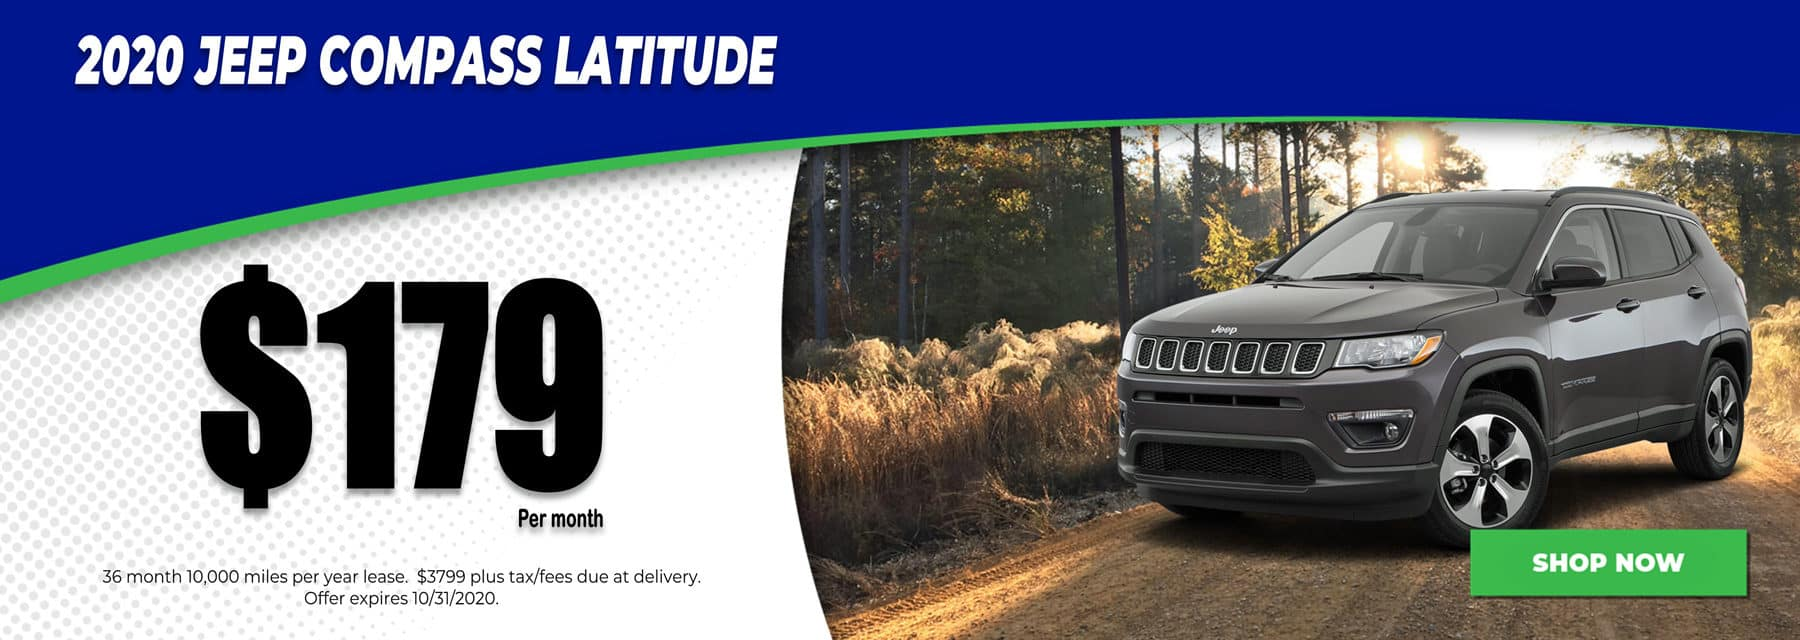 2020 Jeep Compass $179 per month in Mukwonago Wisconsin